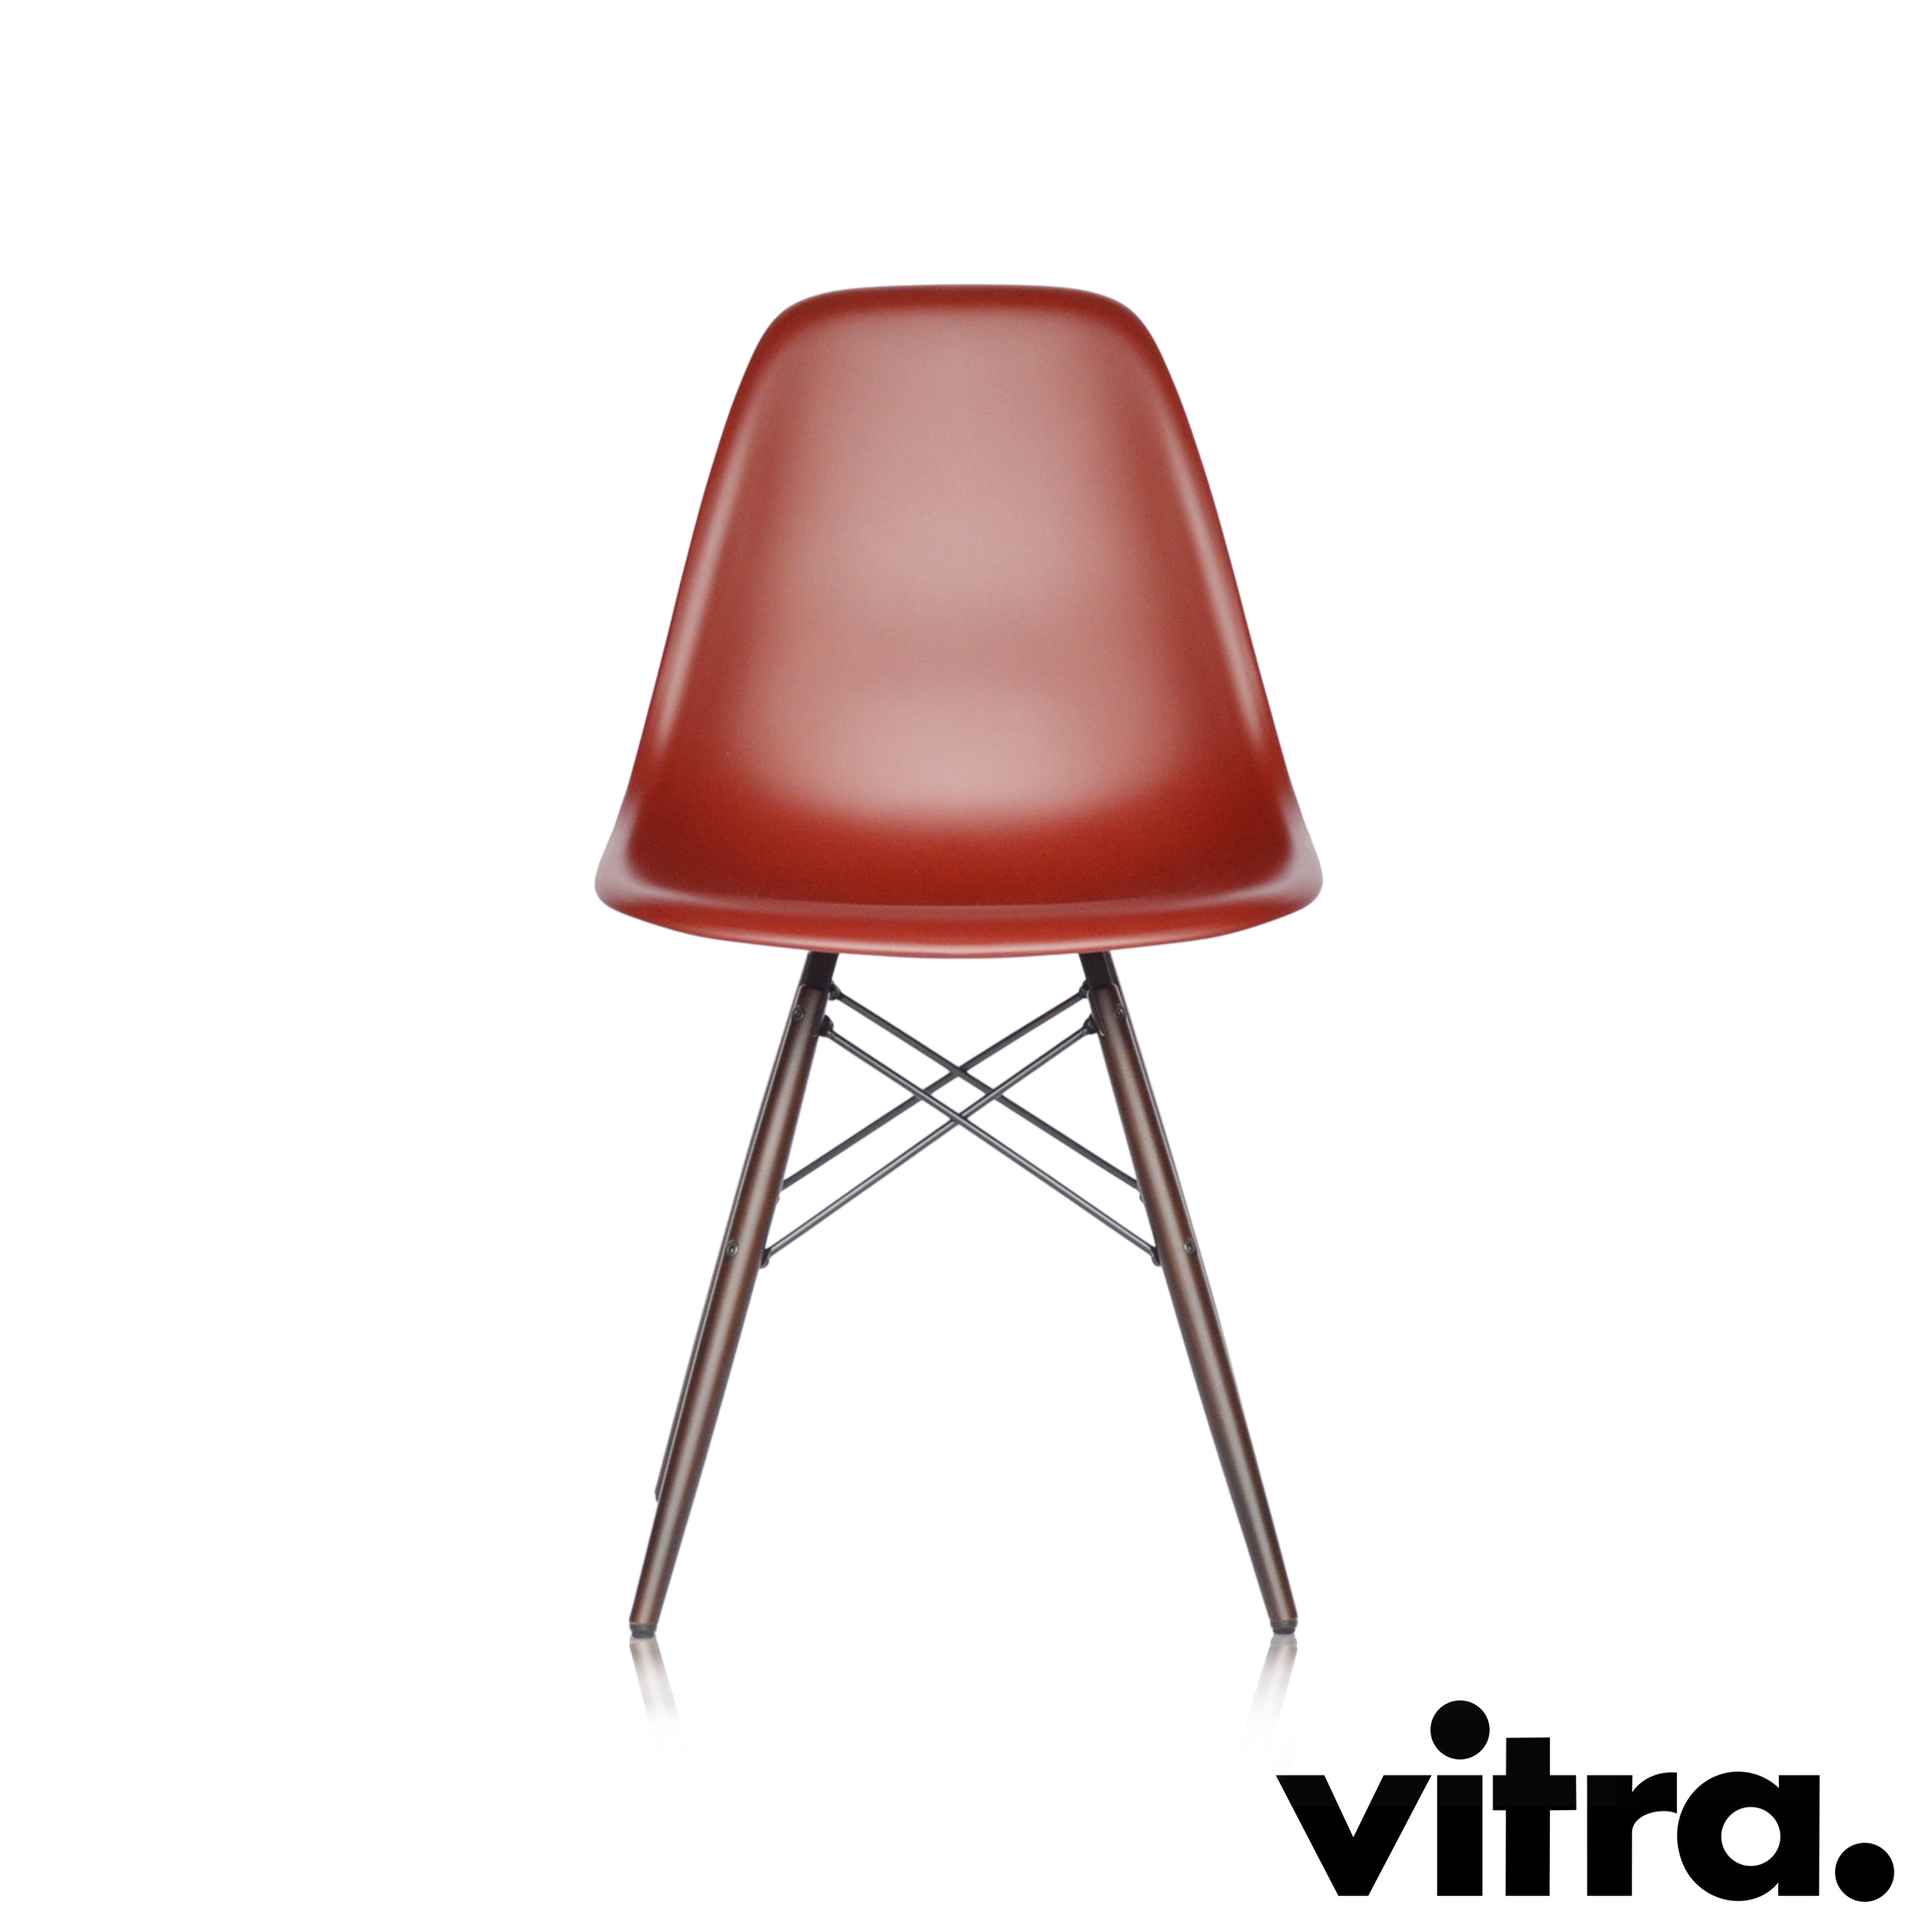 vitra eames plastic side chair dsw oxidrot ahorn midmodern. Black Bedroom Furniture Sets. Home Design Ideas